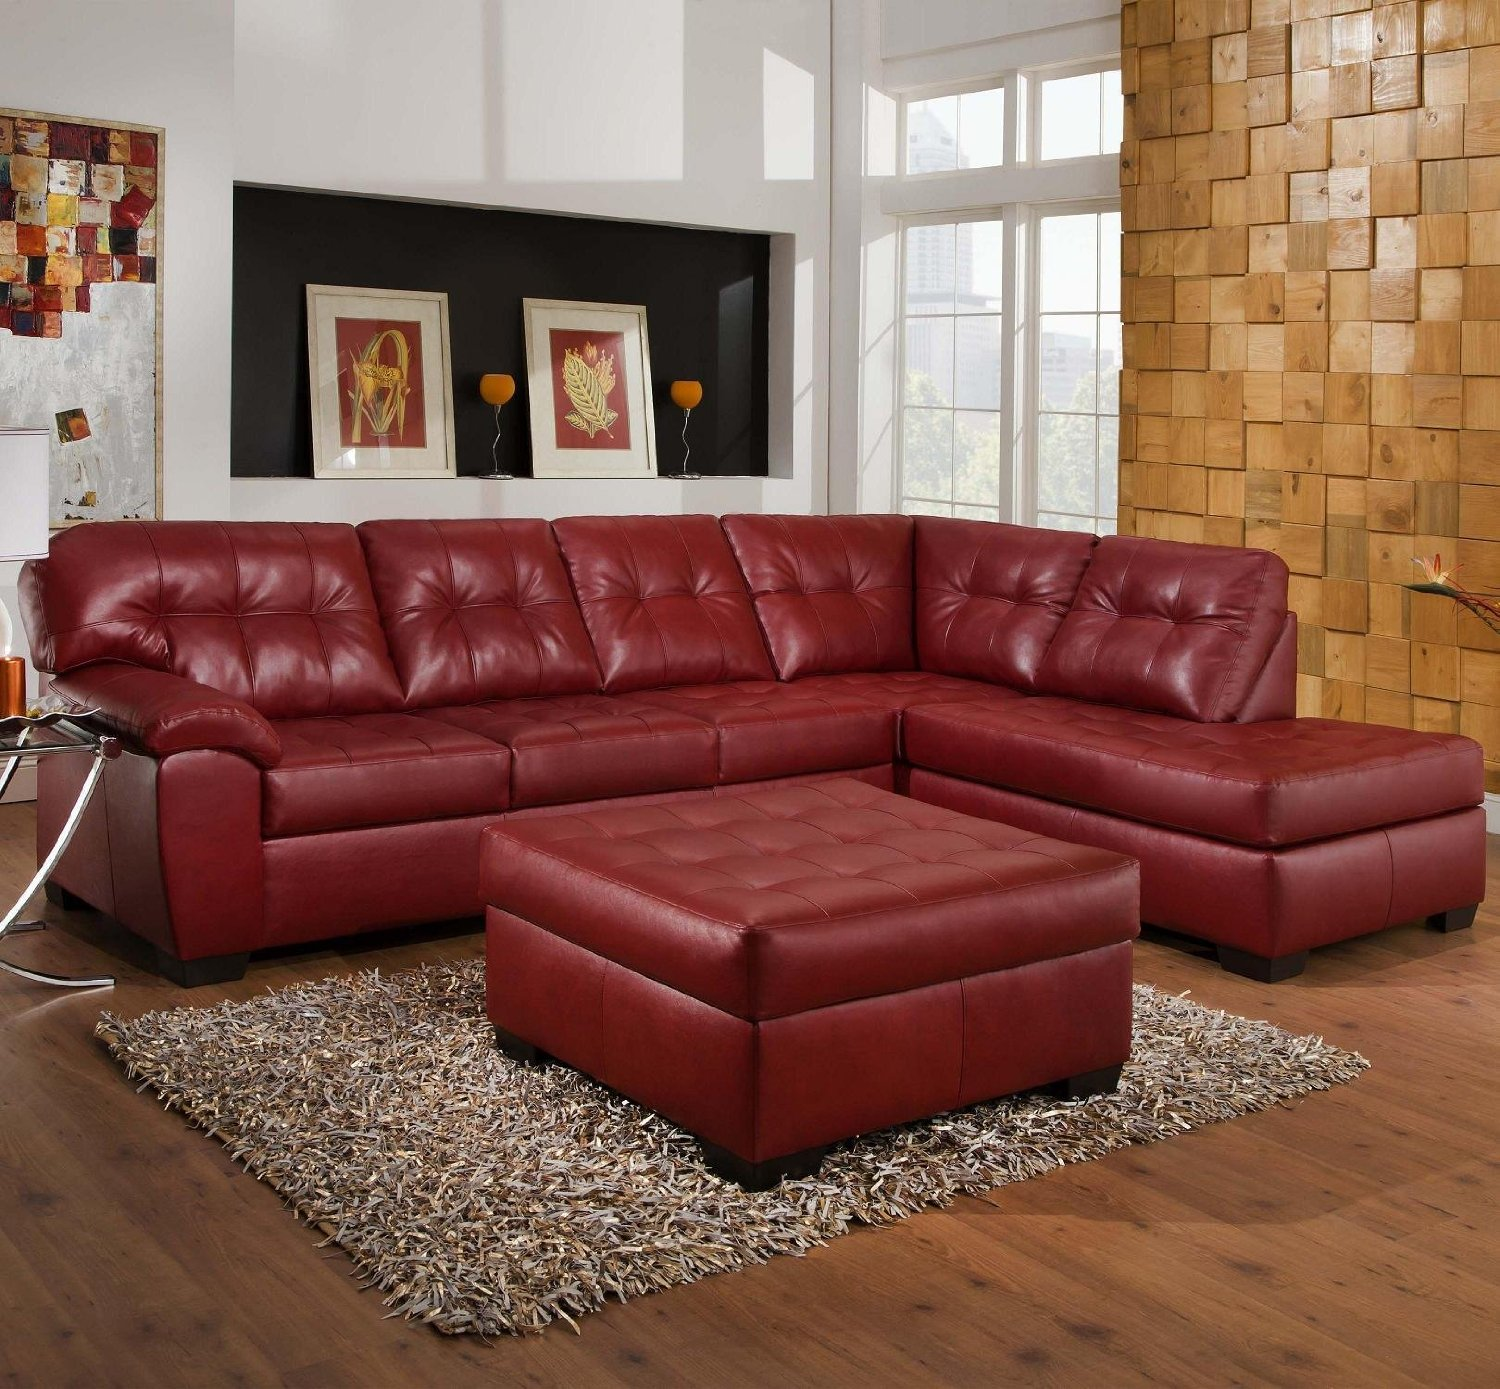 Milano Red Leather Sofa: Sofa Ideas: Red Leather Sofa